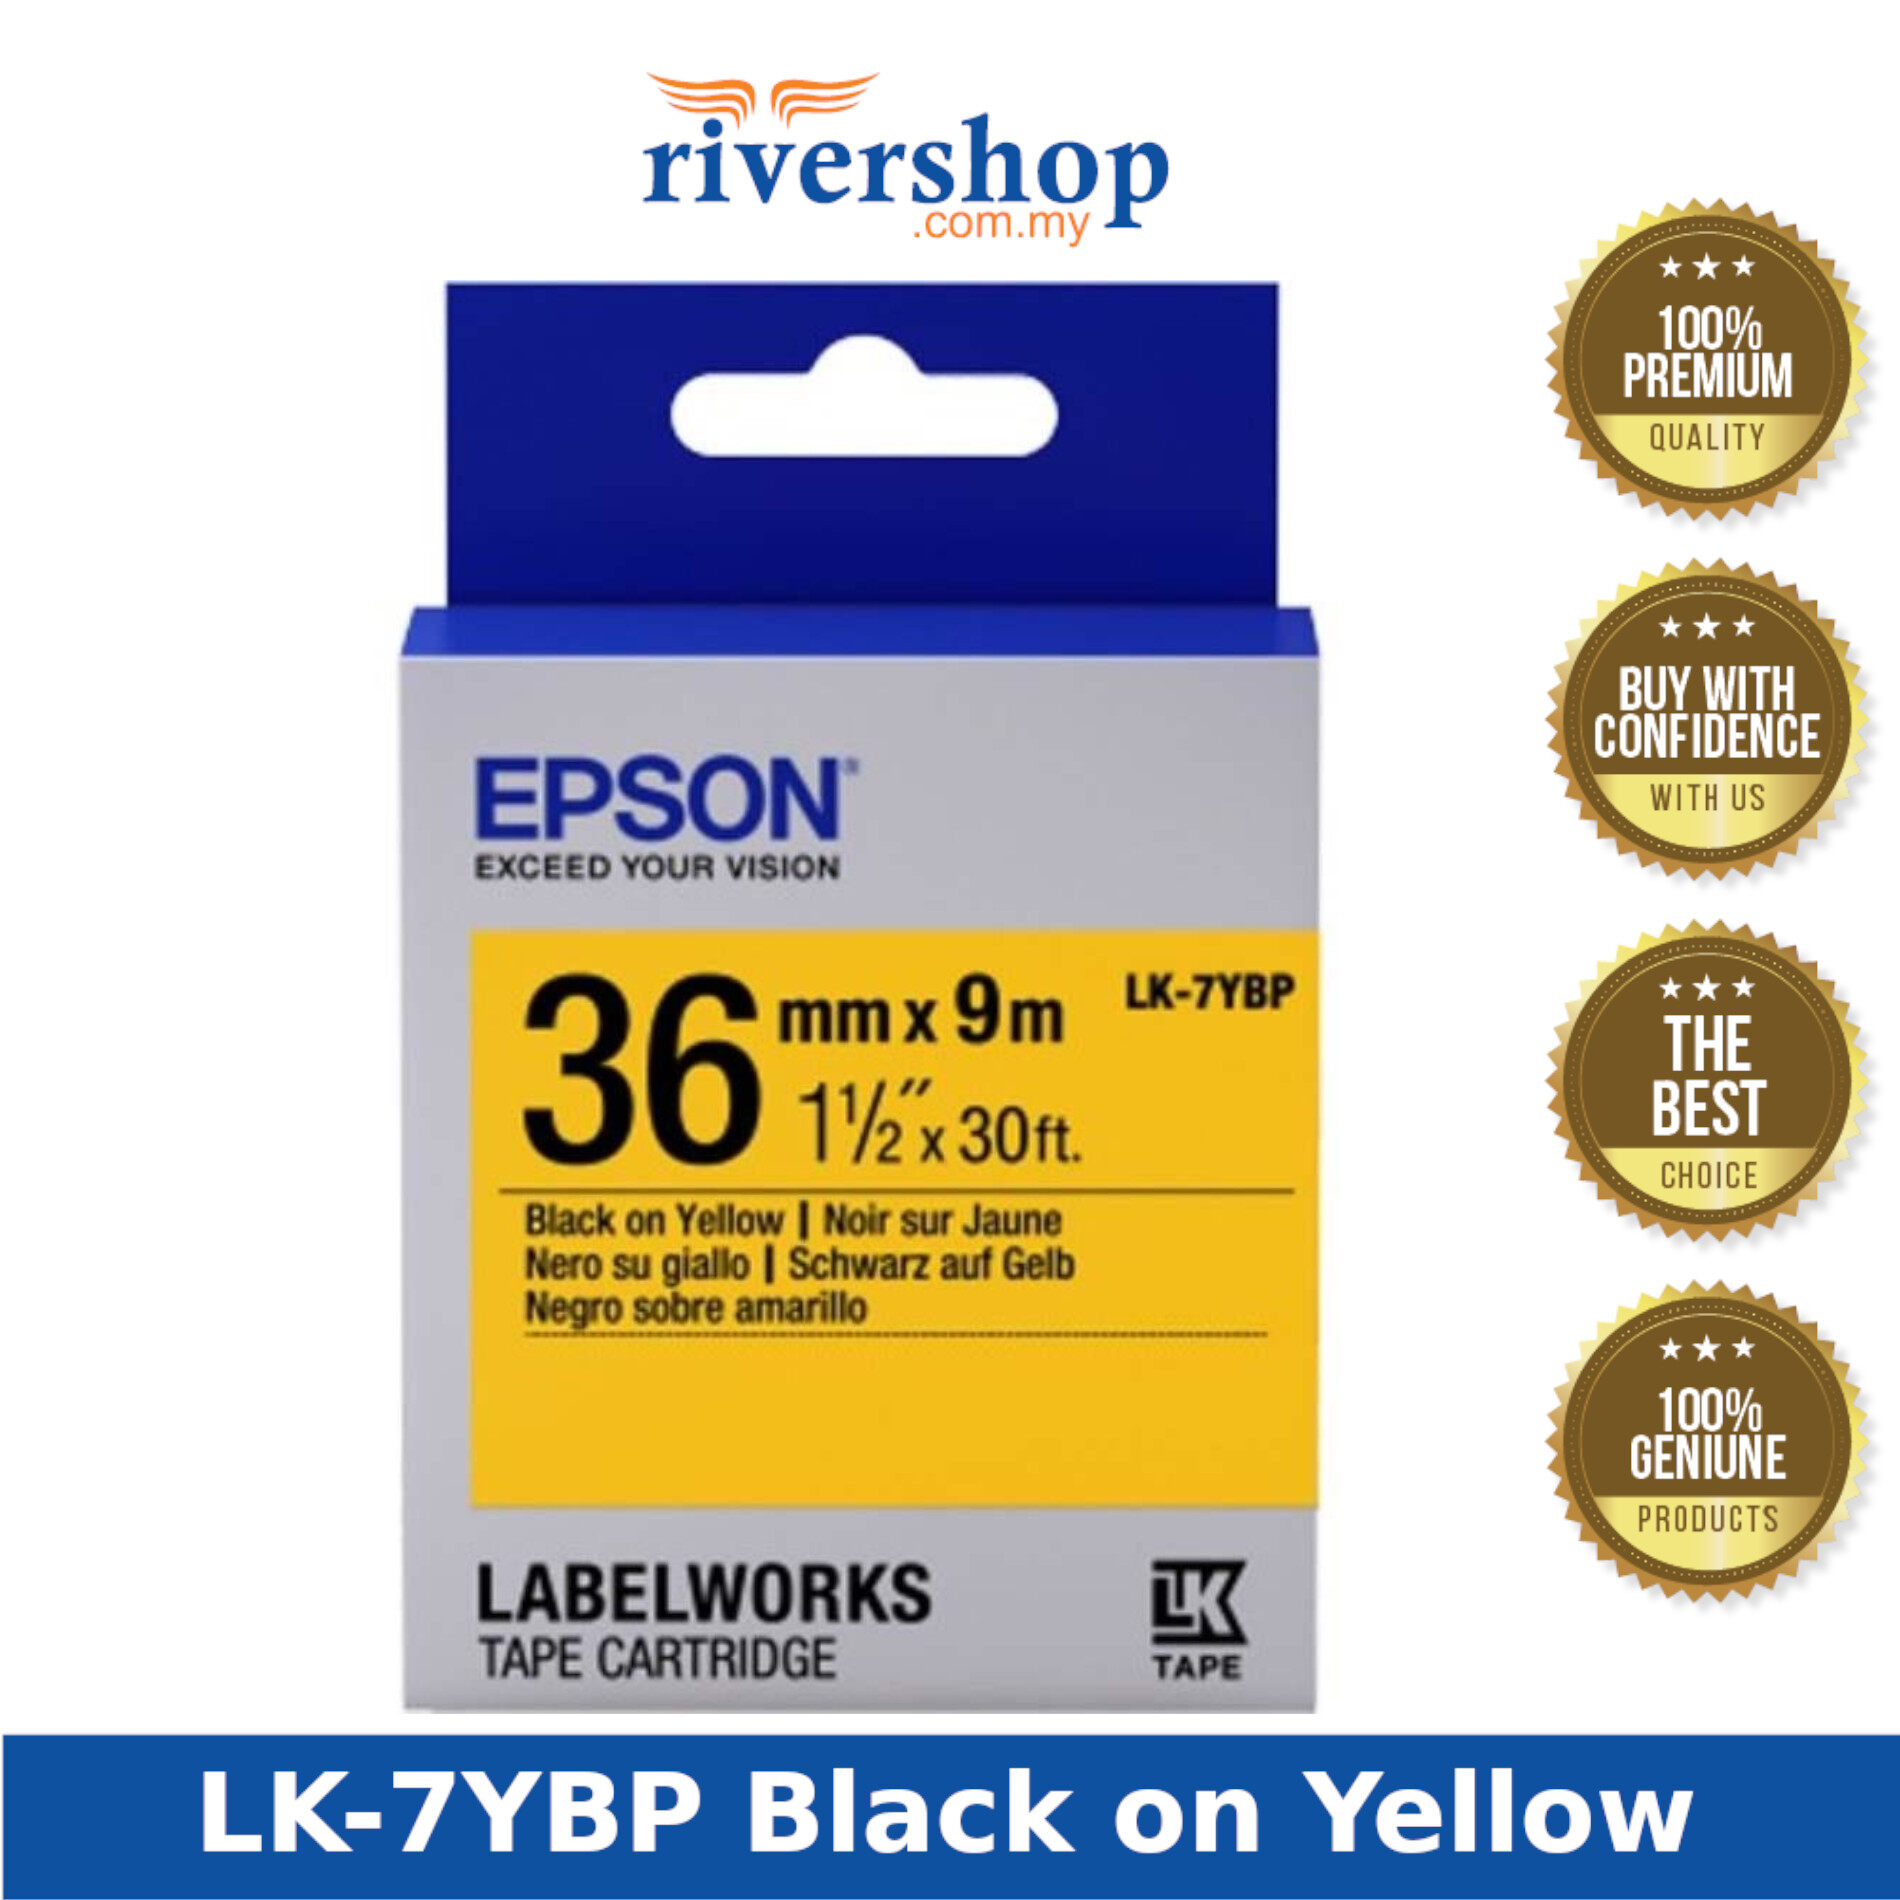 Epson Label Cartridge Tape 36mm Printer Ink and Toner Cartridges, School Stationery & Office Supplies